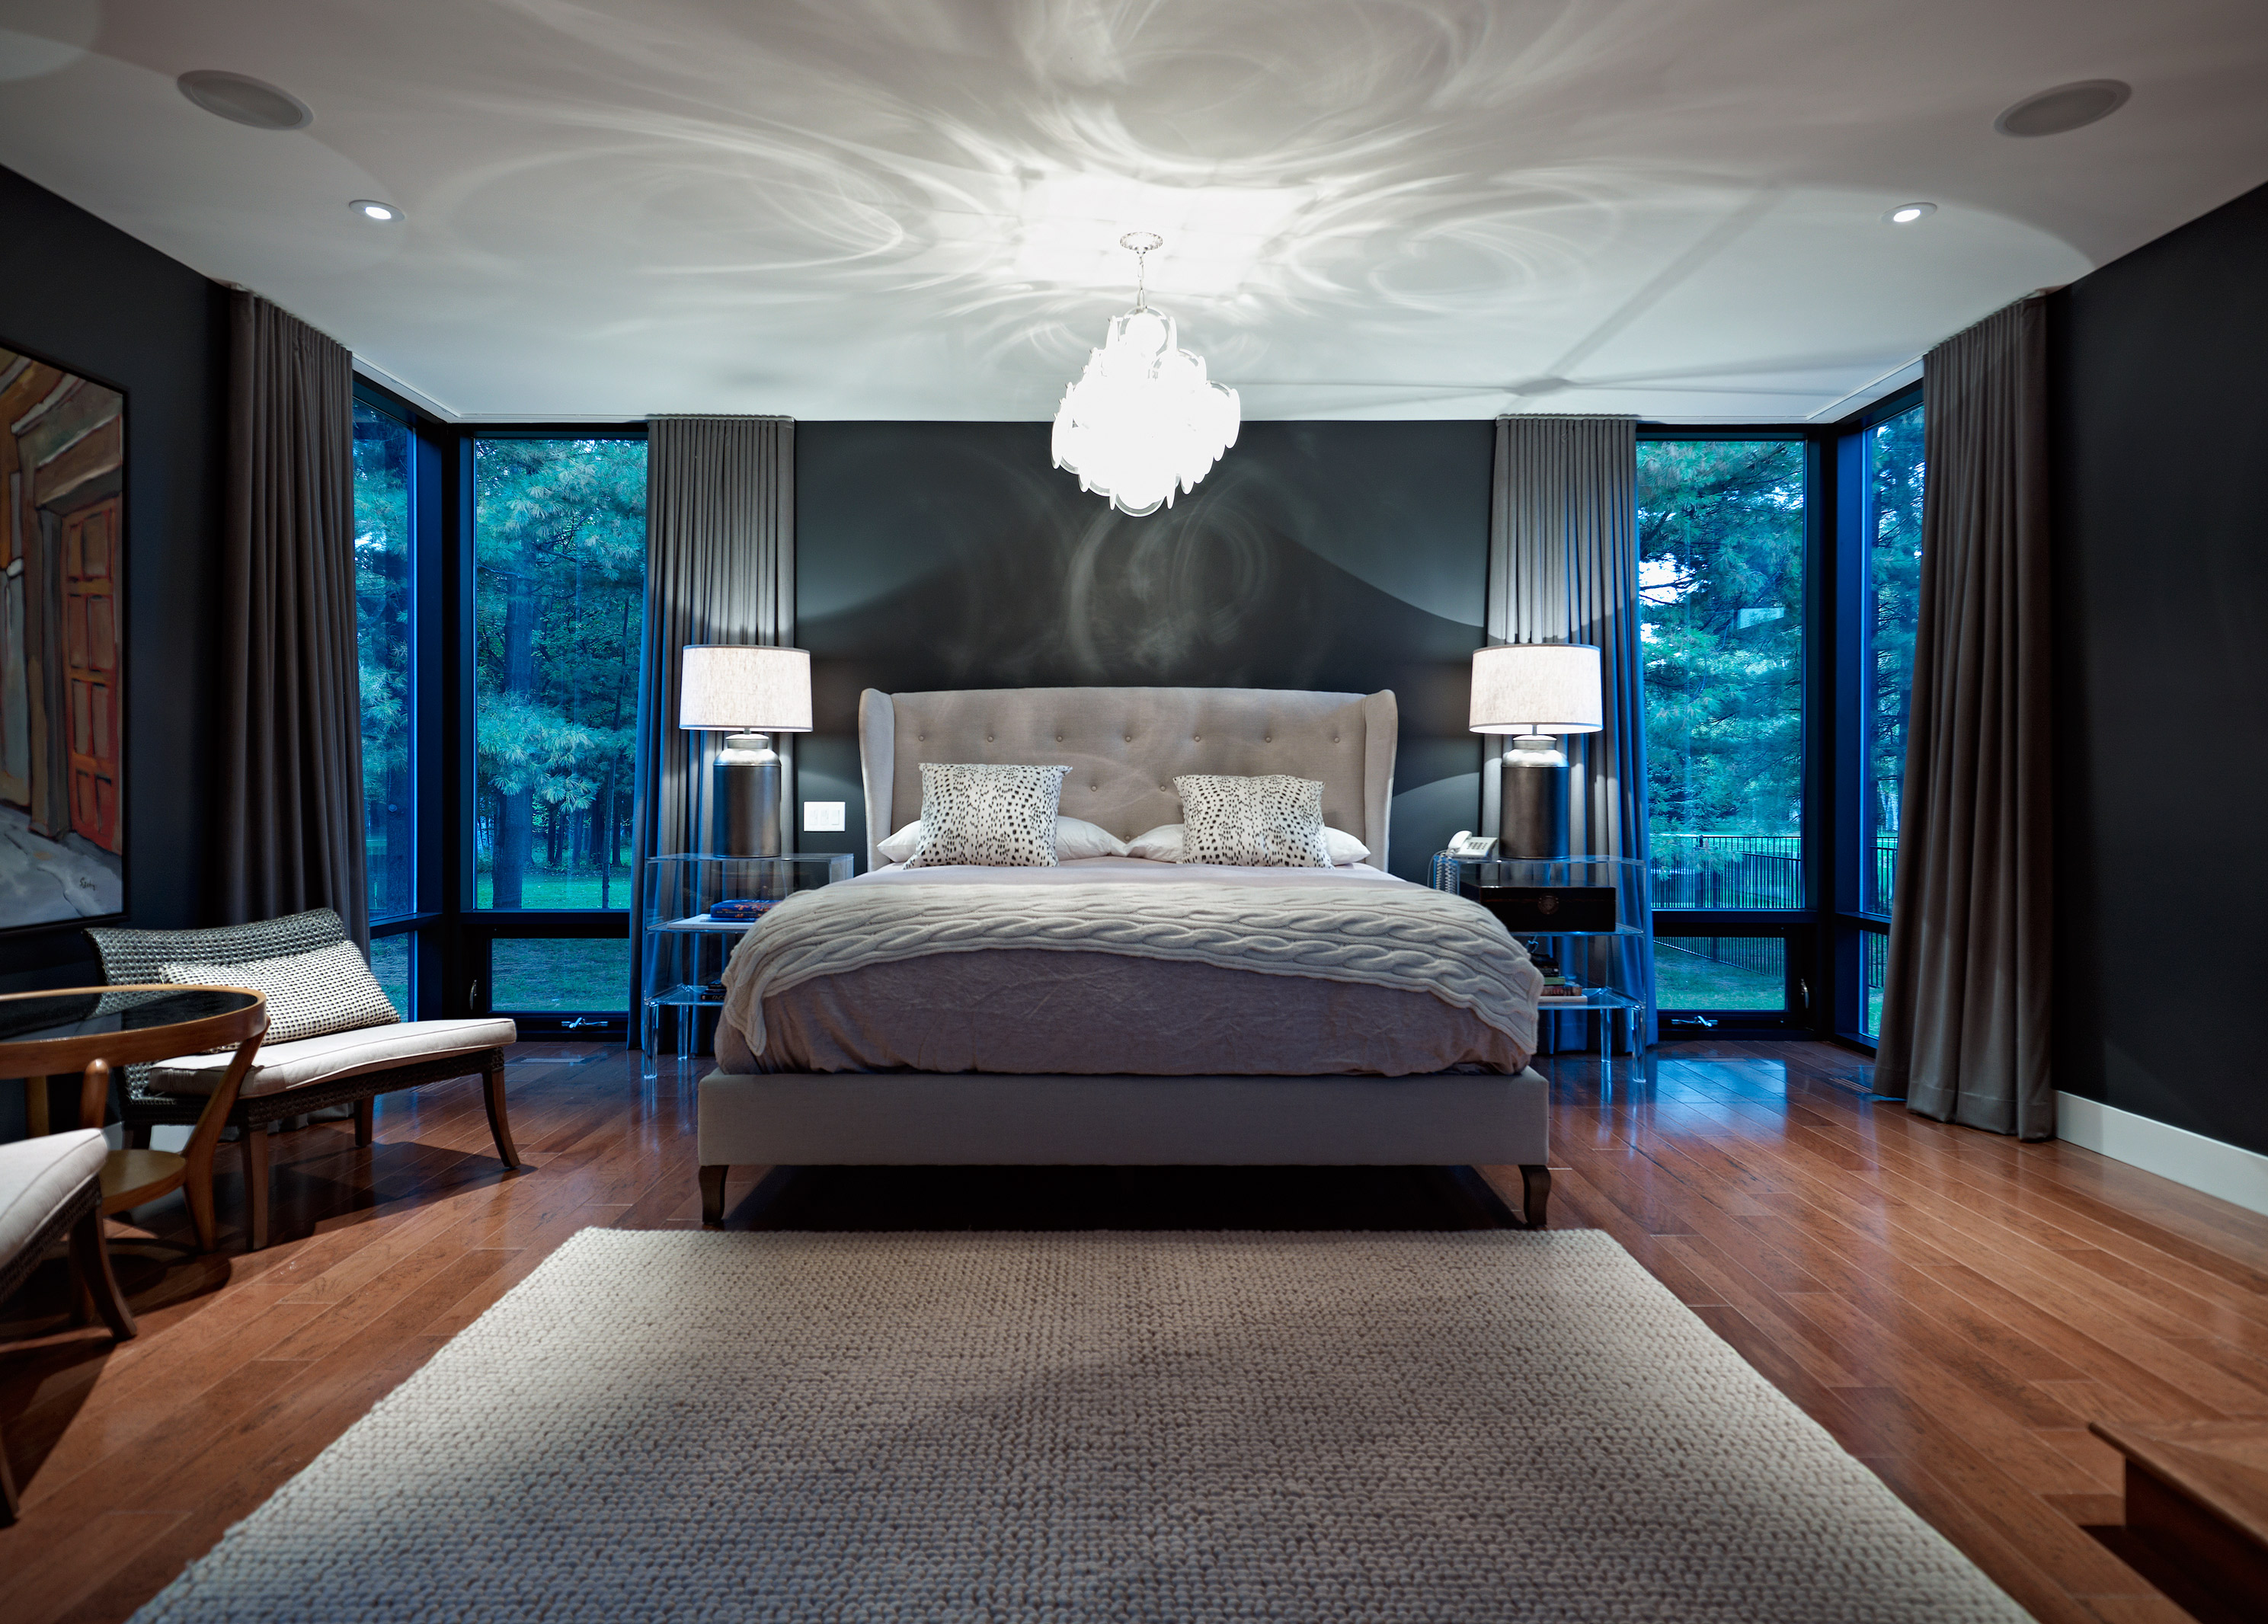 Master bedroom with corner windows, lounge seating and decorative hanging glass chandelier